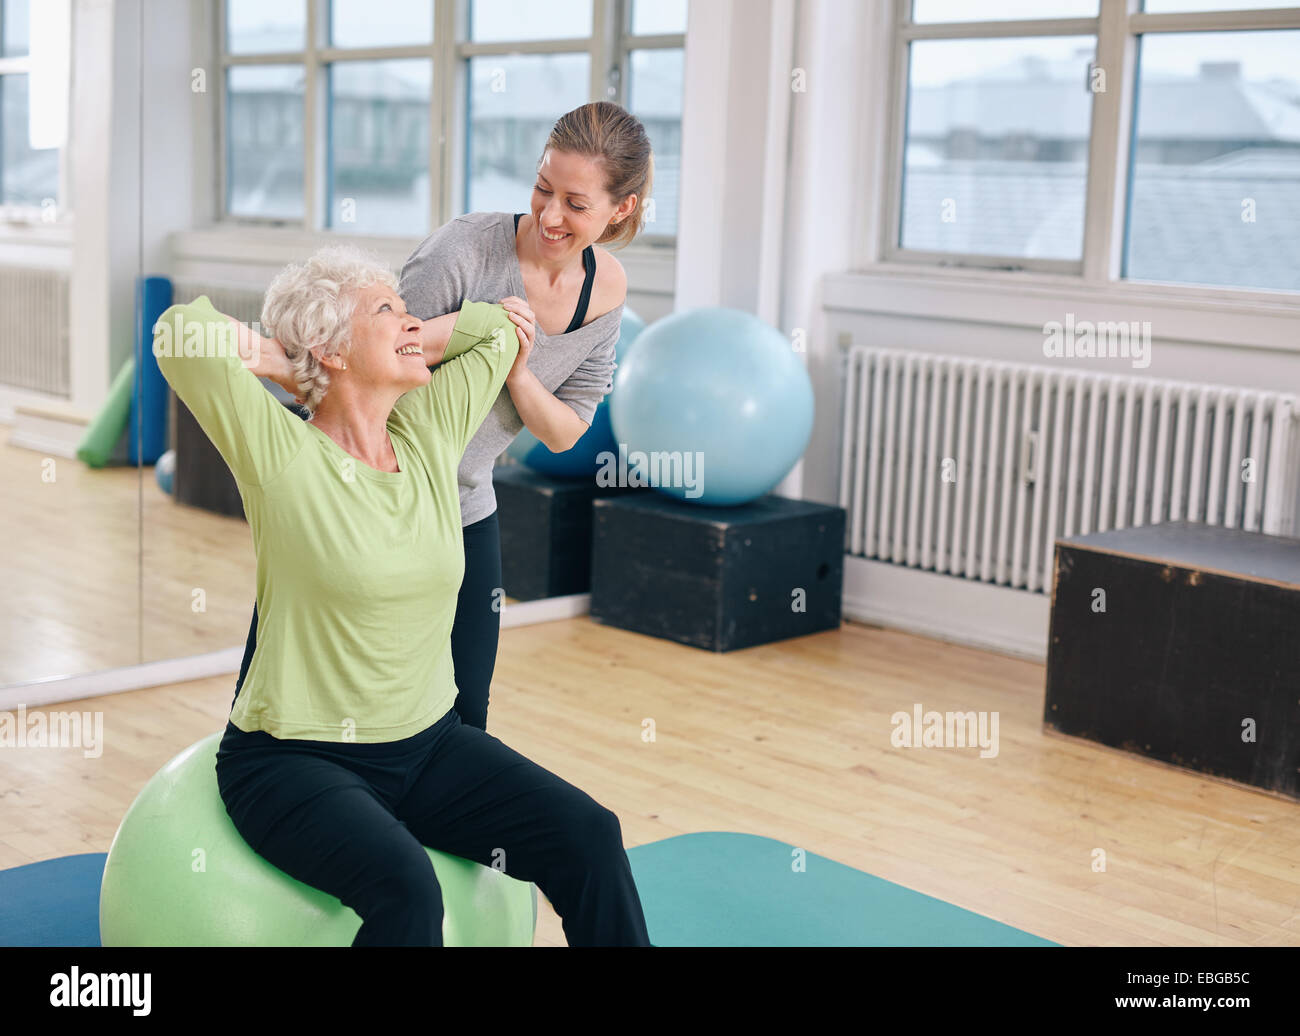 Mature woman working out on a fitness ball with help from personal trainer at gym. Happy senior woman exercising - Stock Image